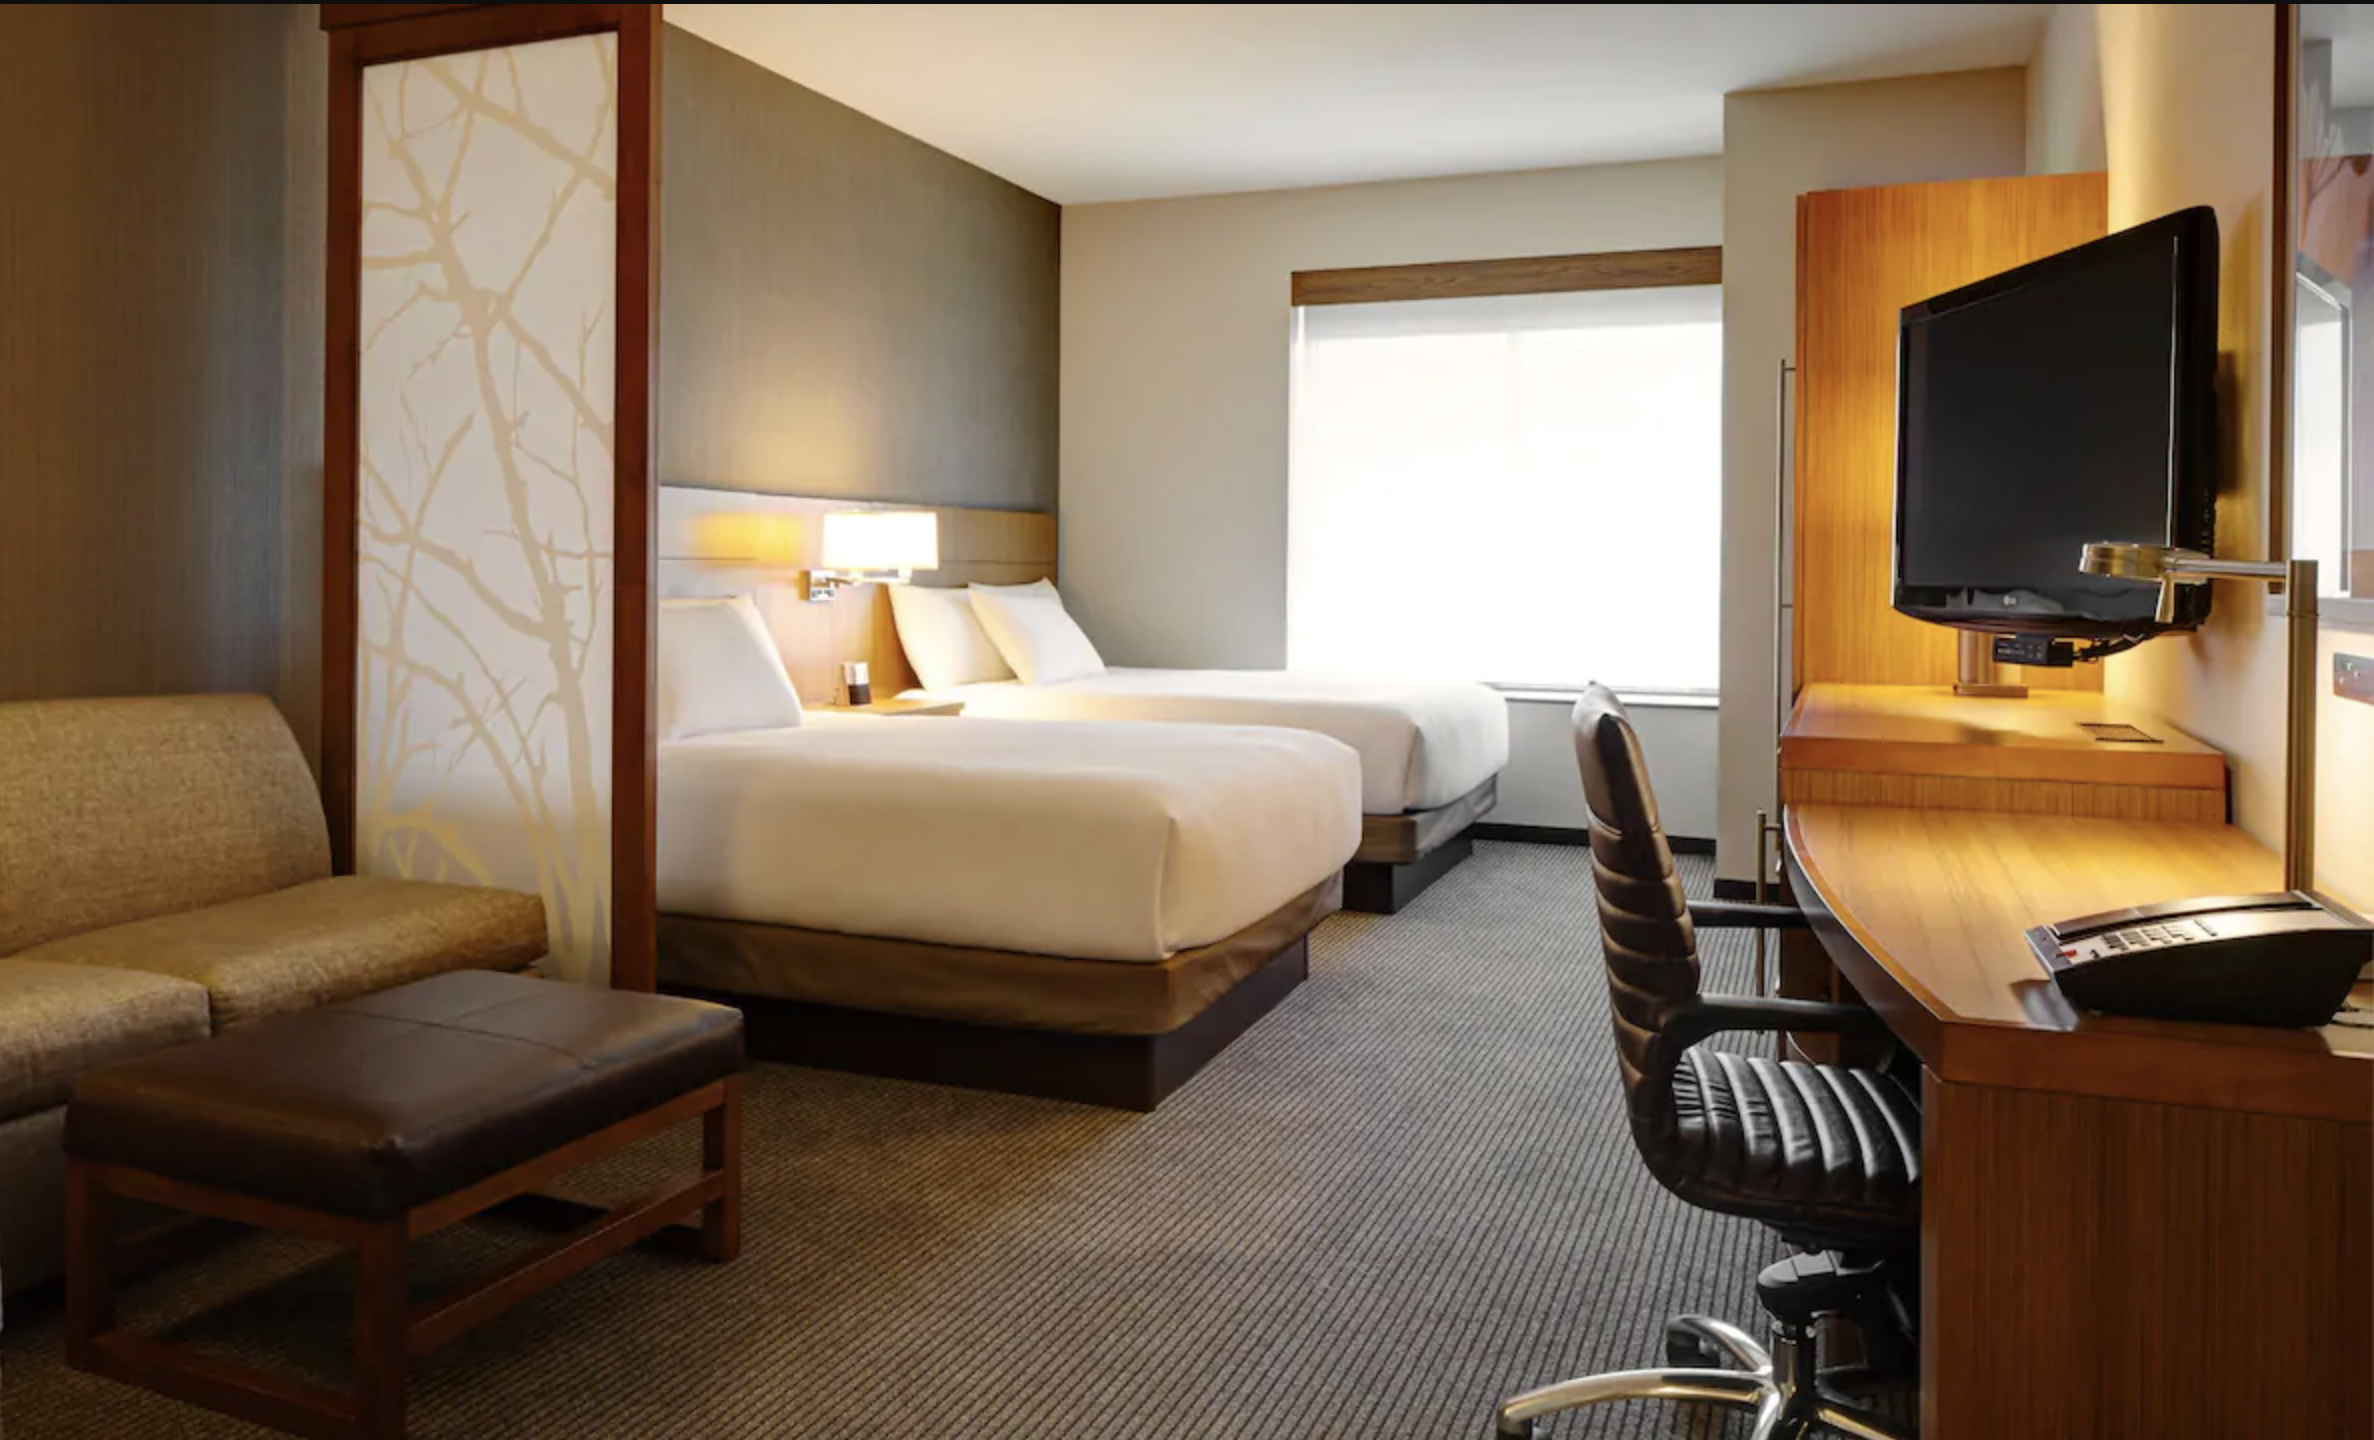 Fresno California welcomes first Hyatt Place hotel [Construction Report]